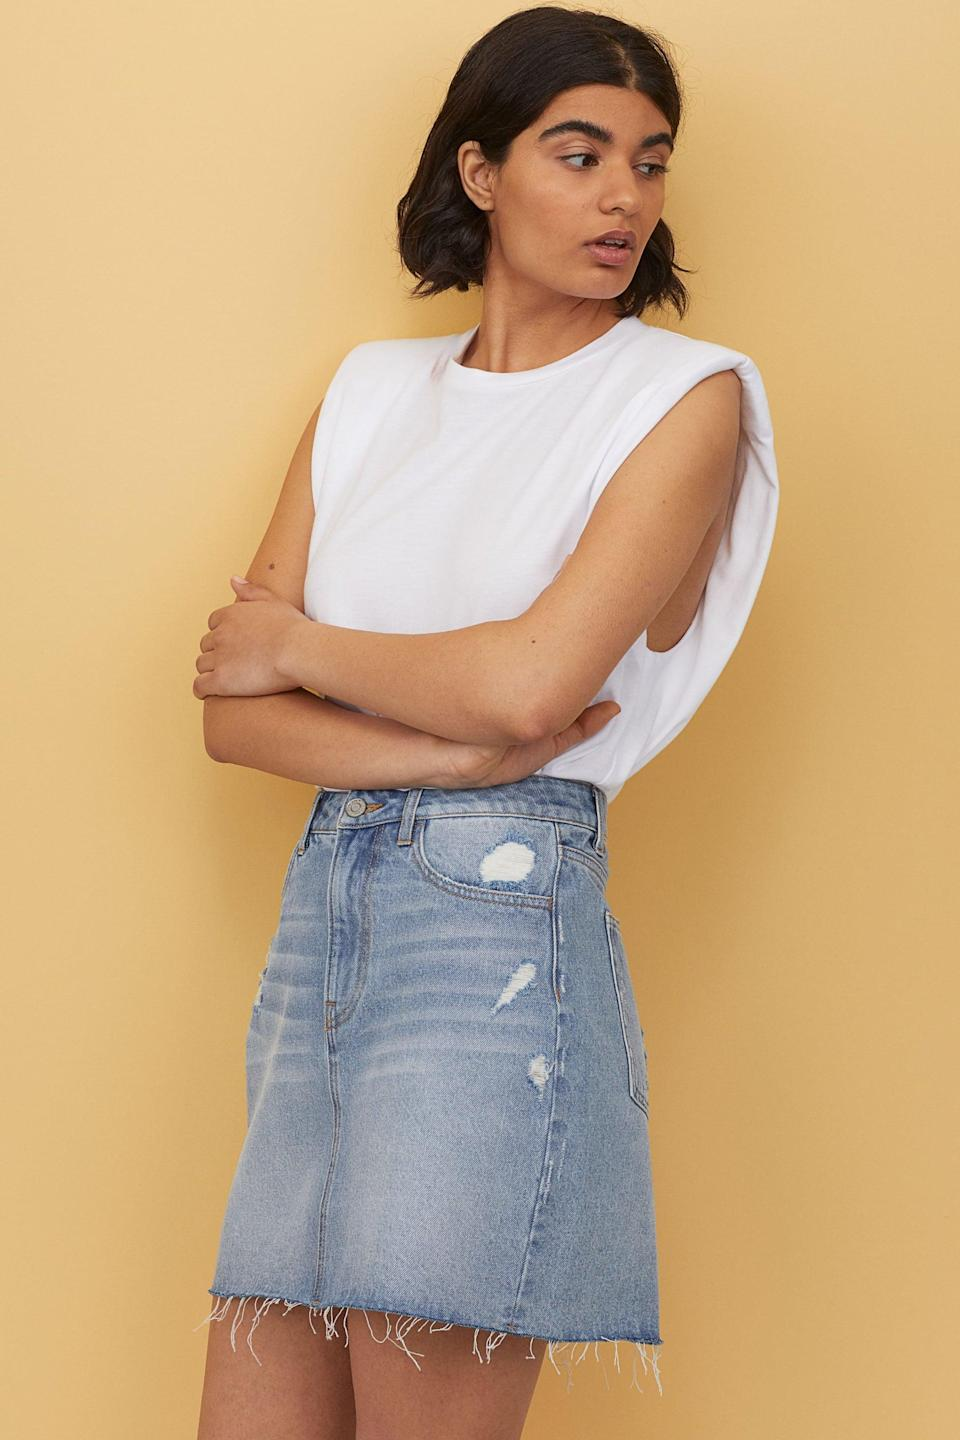 "<p>You can wear this <a href=""https://www.popsugar.com/buy/HampM-Denim-Skirt-581994?p_name=H%26amp%3BM%20Denim%20Skirt&retailer=www2.hm.com&pid=581994&price=20&evar1=fab%3Aus&evar9=35329485&evar98=https%3A%2F%2Fwww.popsugar.com%2Ffashion%2Fphoto-gallery%2F35329485%2Fimage%2F47550200%2FHM-Denim-Skirt&list1=shopping%2Cdenim%2Csummer%20fashion%2Cfashion%20shopping&prop13=mobile&pdata=1"" class=""link rapid-noclick-resp"" rel=""nofollow noopener"" target=""_blank"" data-ylk=""slk:H&amp;M Denim Skirt"">H&amp;M Denim Skirt</a> ($20) so many ways.</p>"